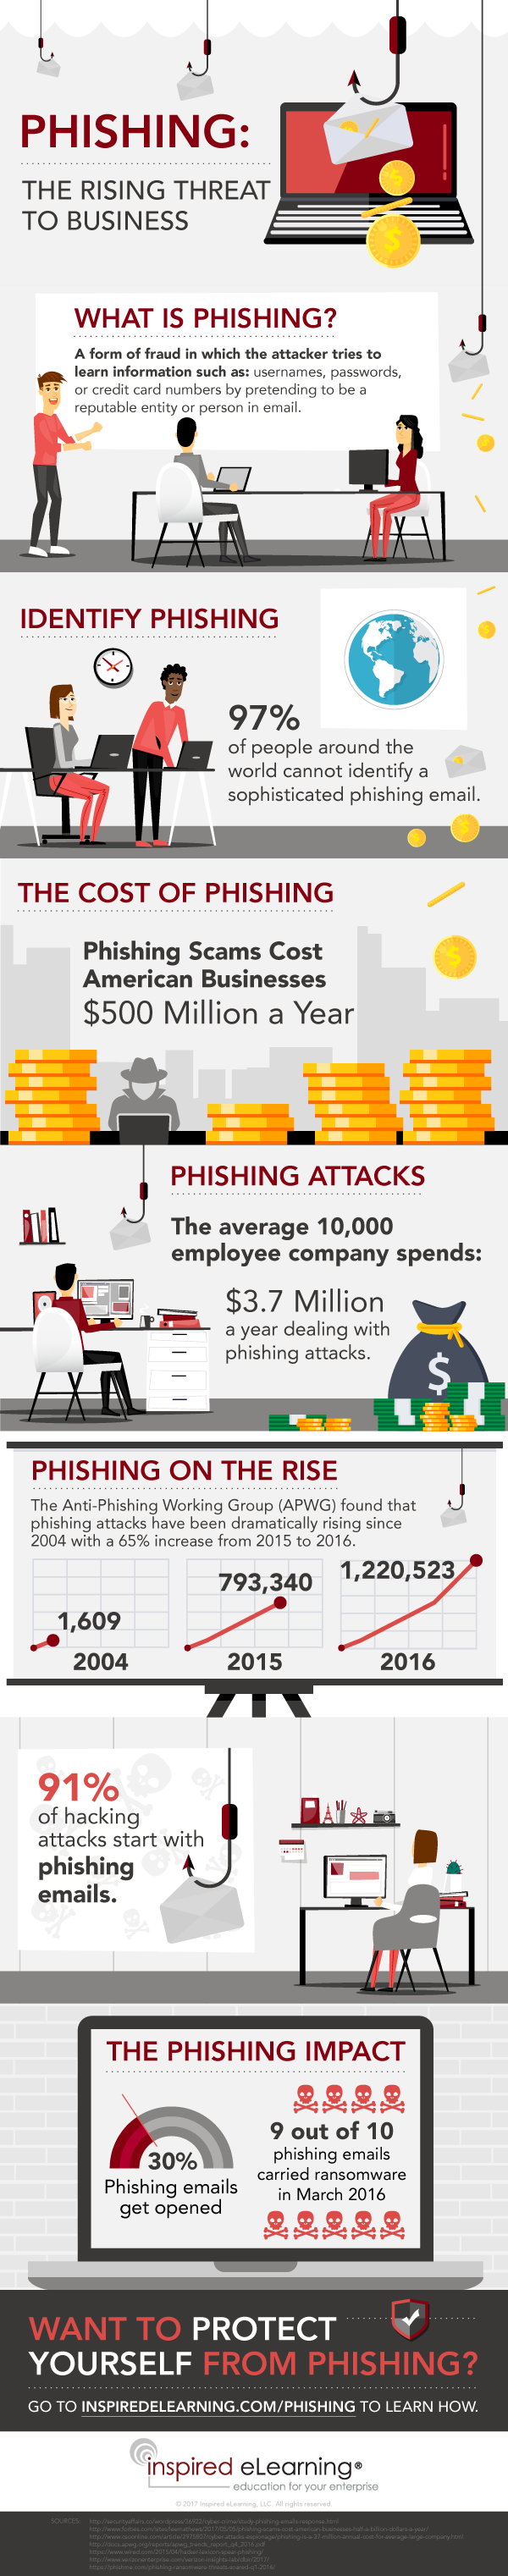 Rising Threat of Phishing $500M